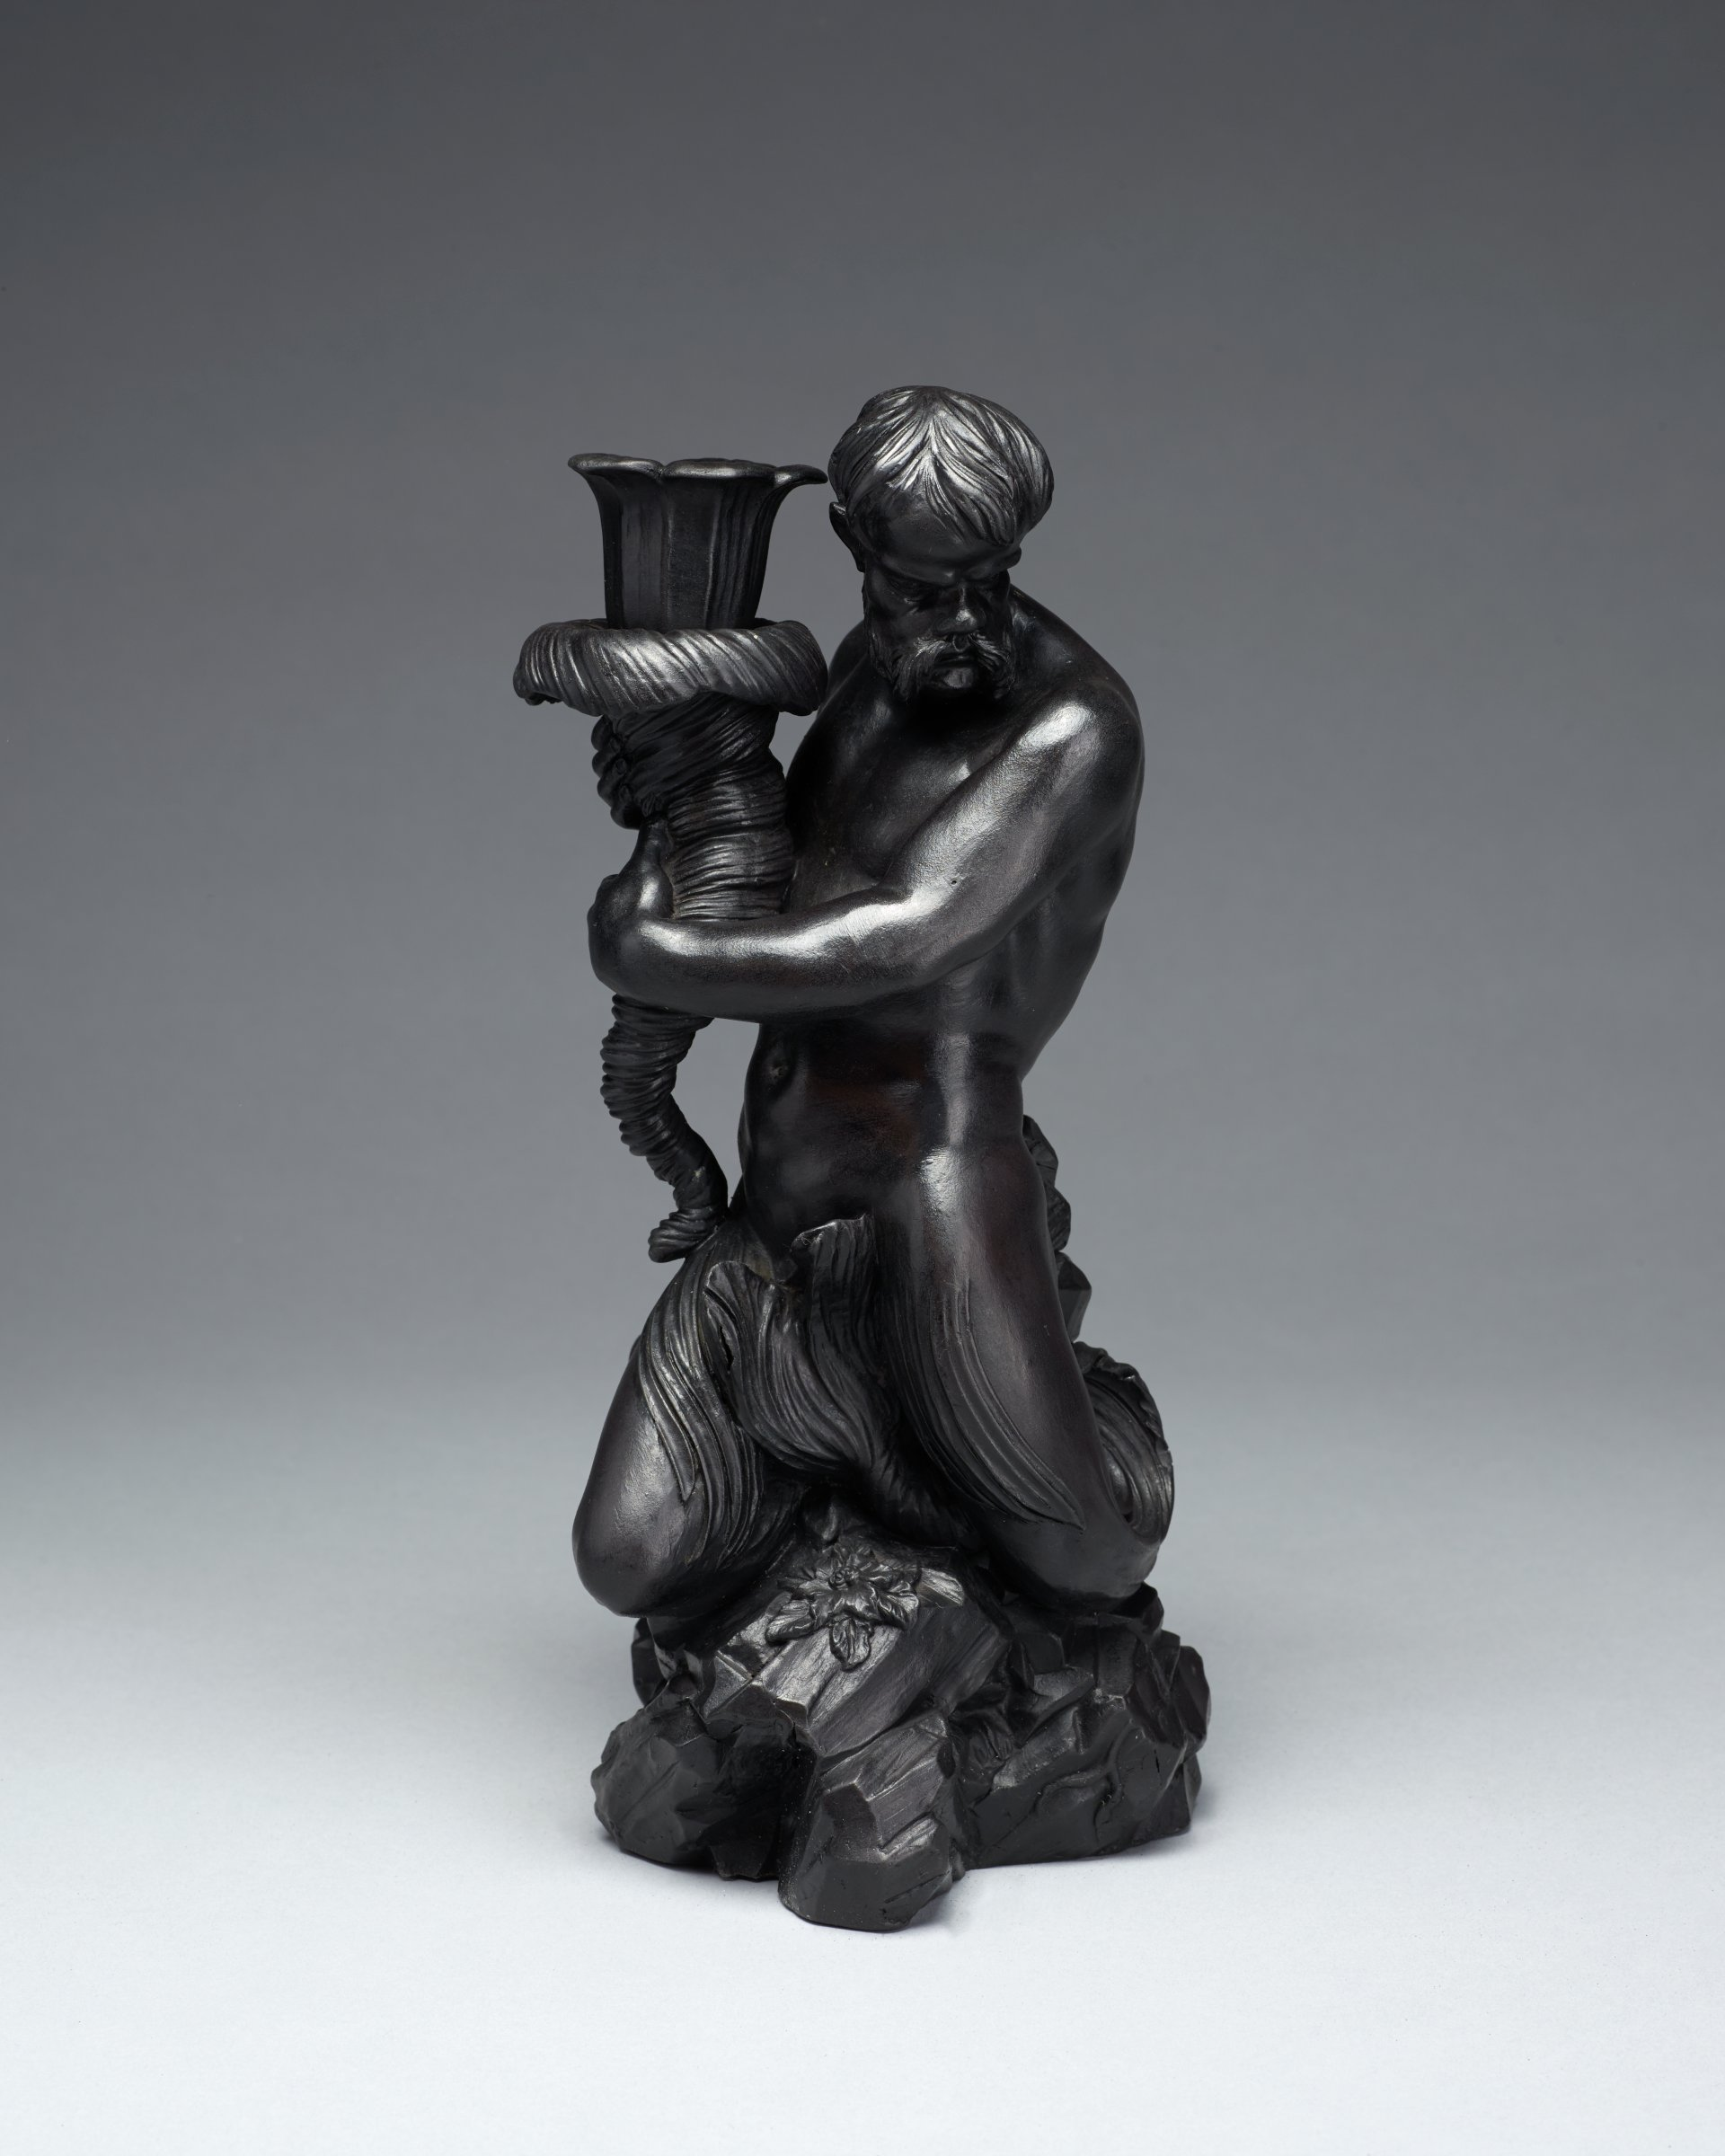 Candleholder of black basalt in the form of a bearded, naked Triton with seaweed clinging to his thighs sitting atop a rocky base and holding in both hands a whorled conch shell that functions as the candleholder.